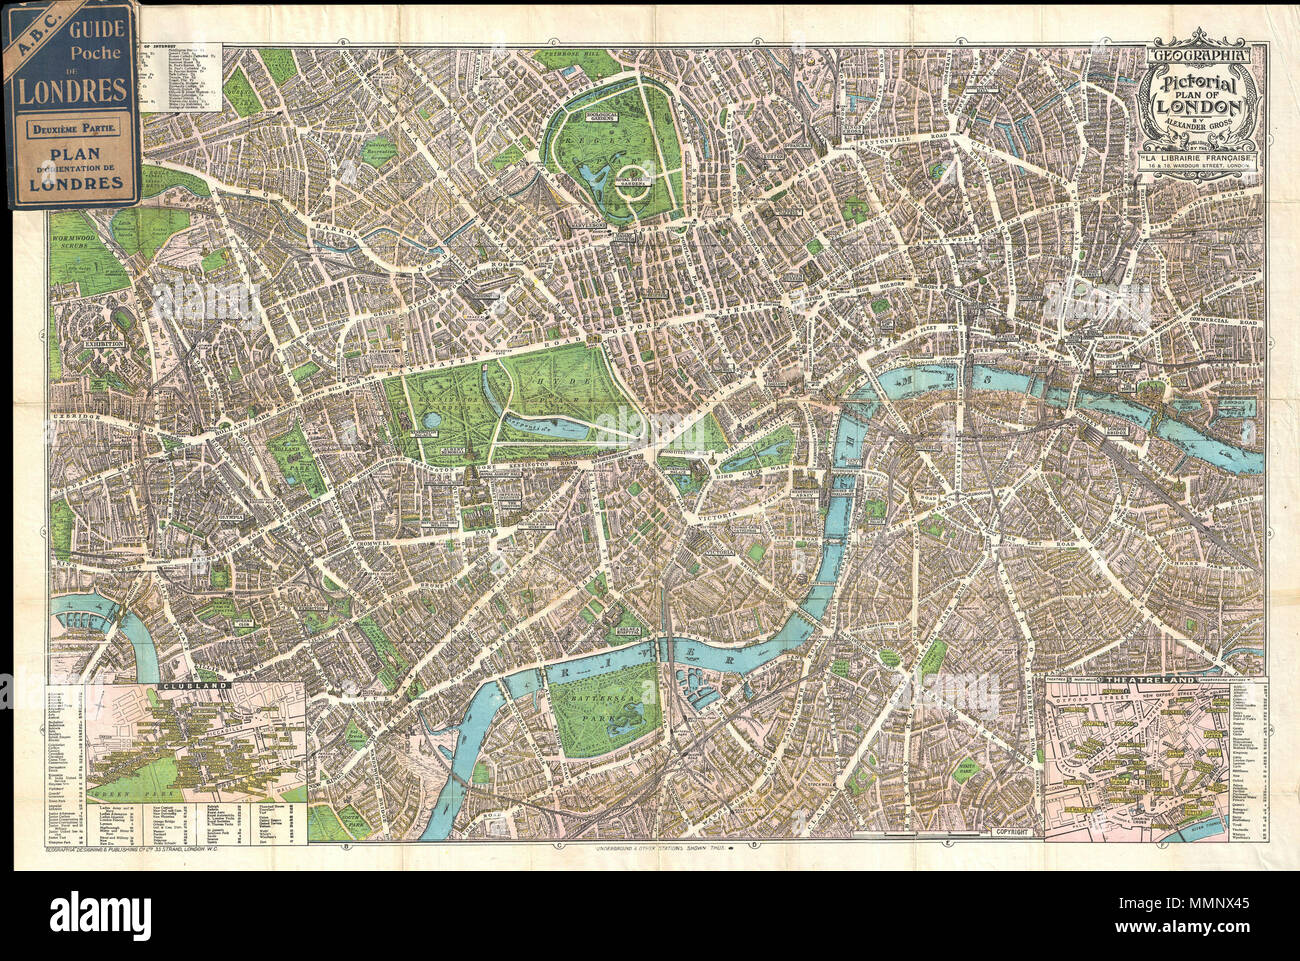 english this is a wonderful map of pocket map of london and published c 1924 by geographia ltd covers downtown london from the hammersmith bridge and